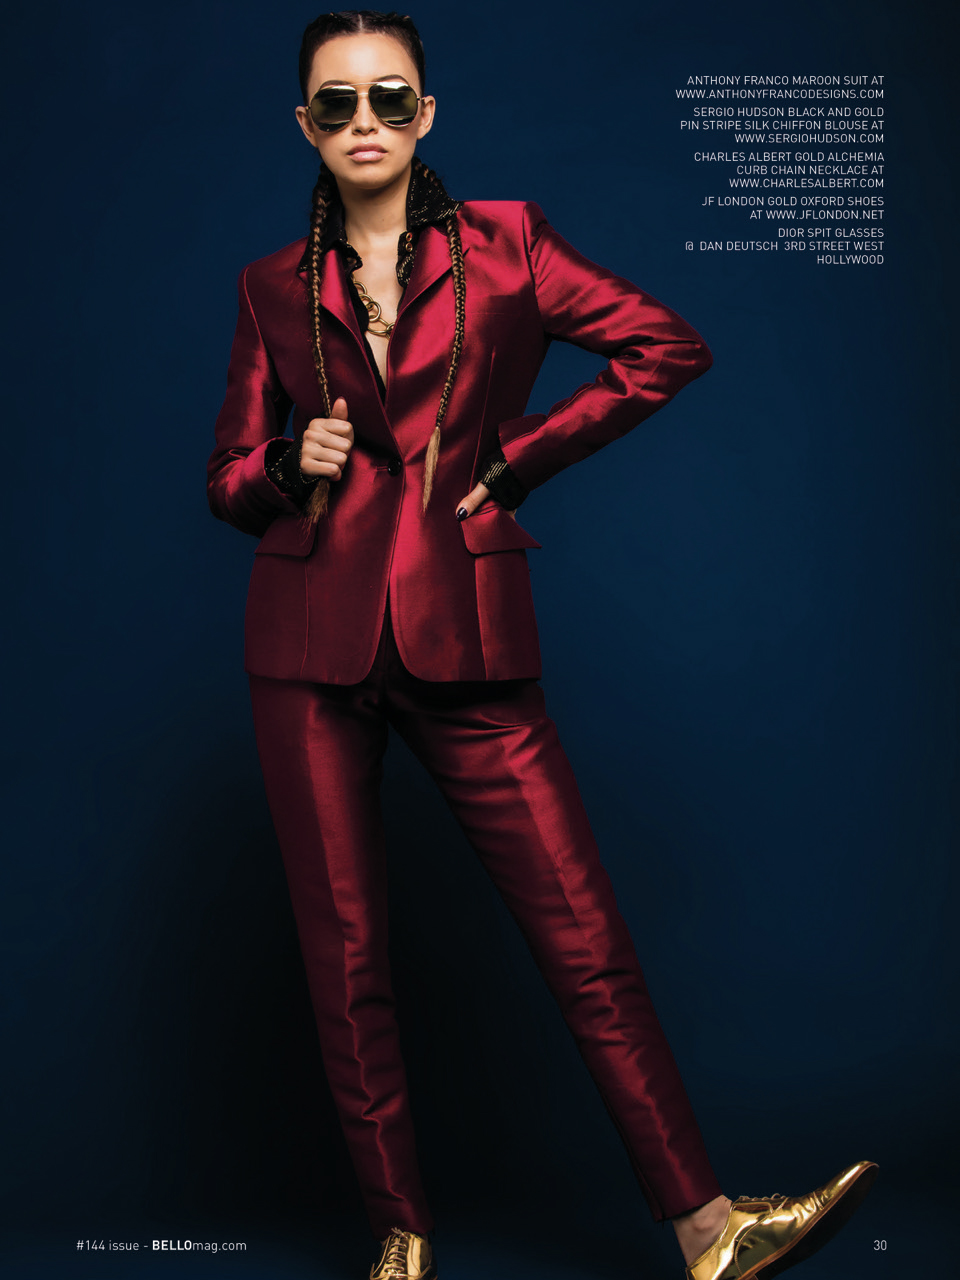 The Walking Dead's Christian Serratos in Maroon Suit, Gold Shoes and Dior Split Sunglasses